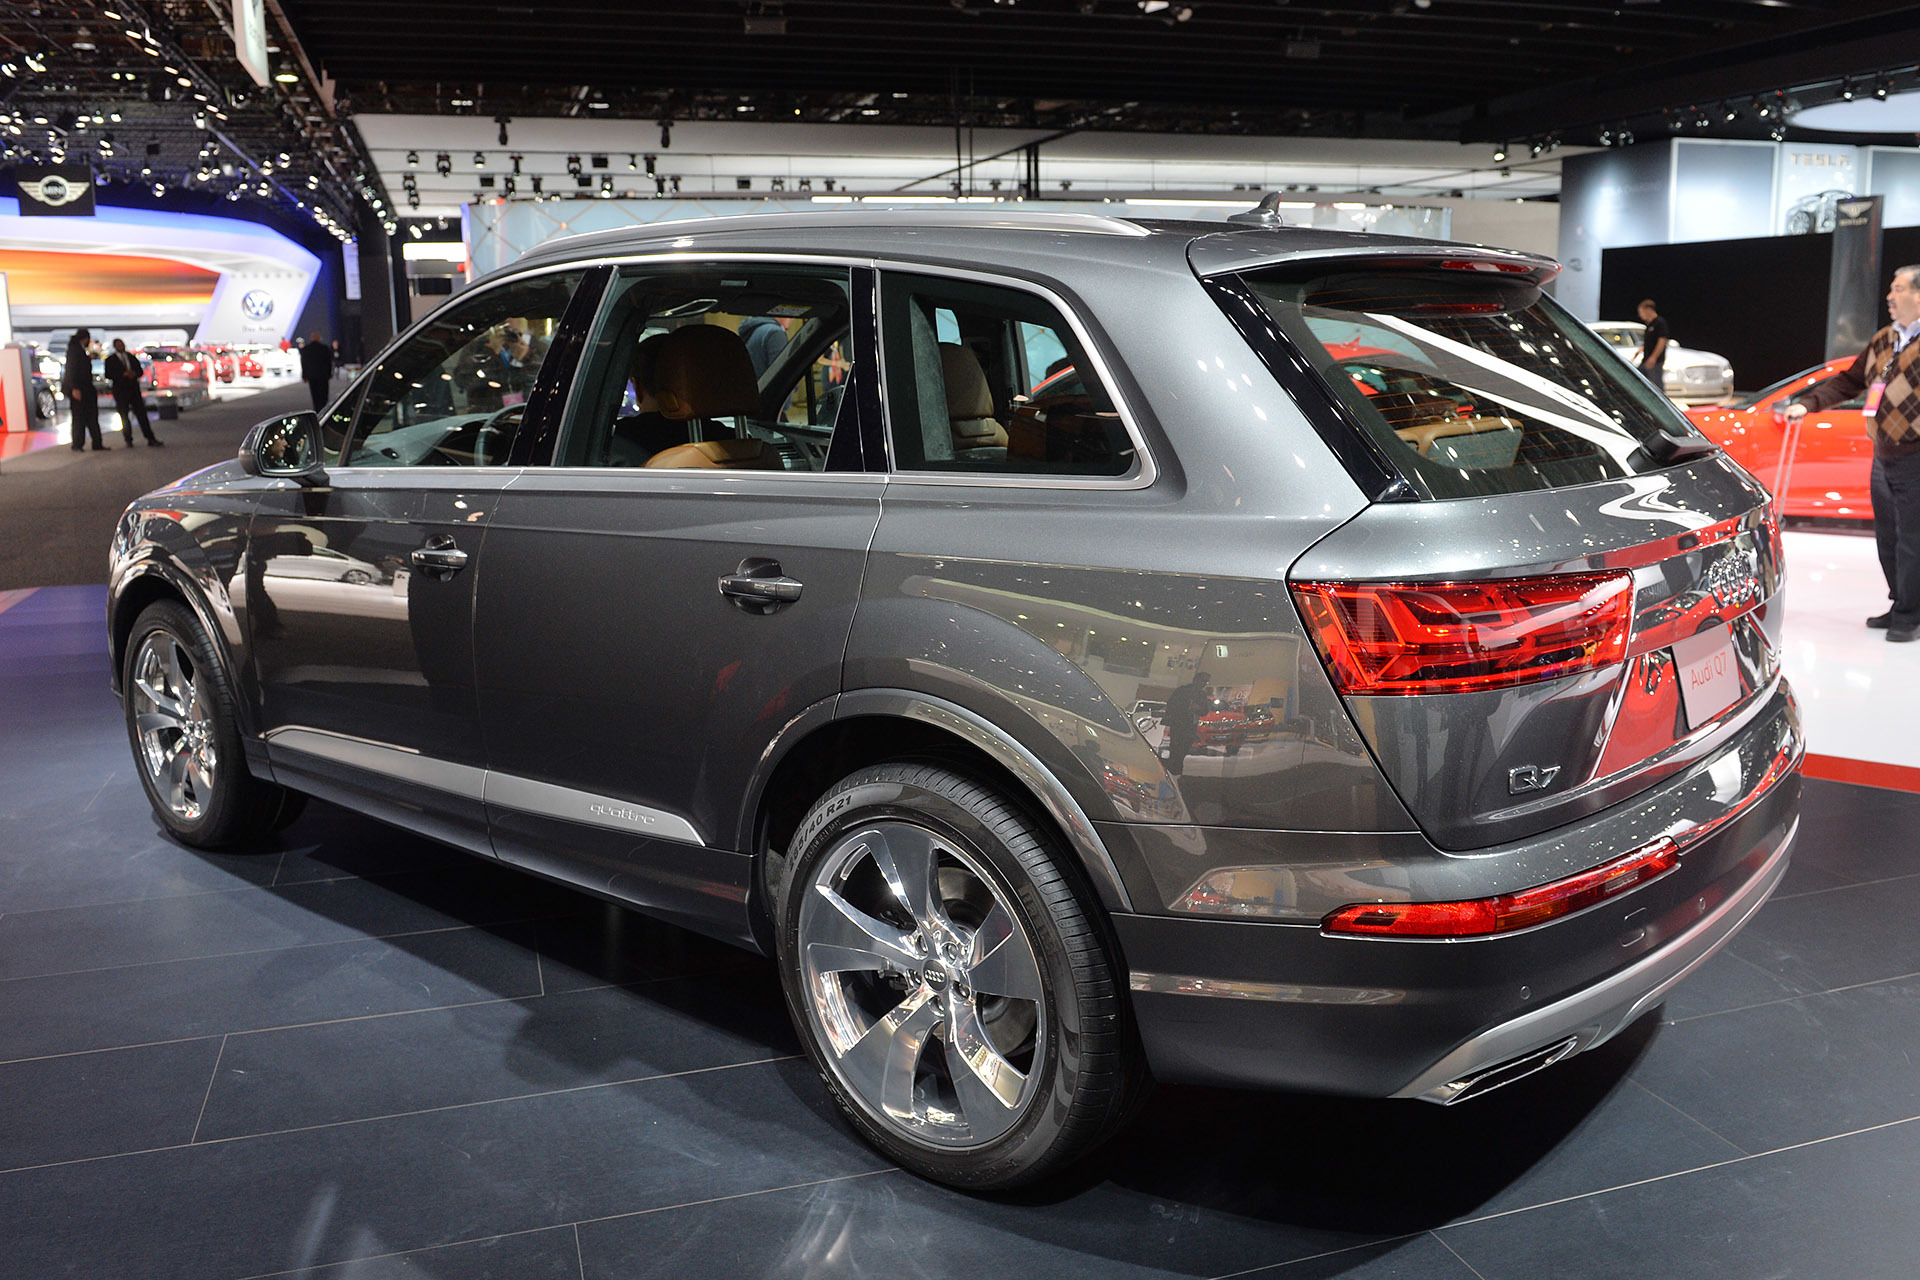 2016 audi q7 detroit 2015 photo gallery autoblog. Black Bedroom Furniture Sets. Home Design Ideas